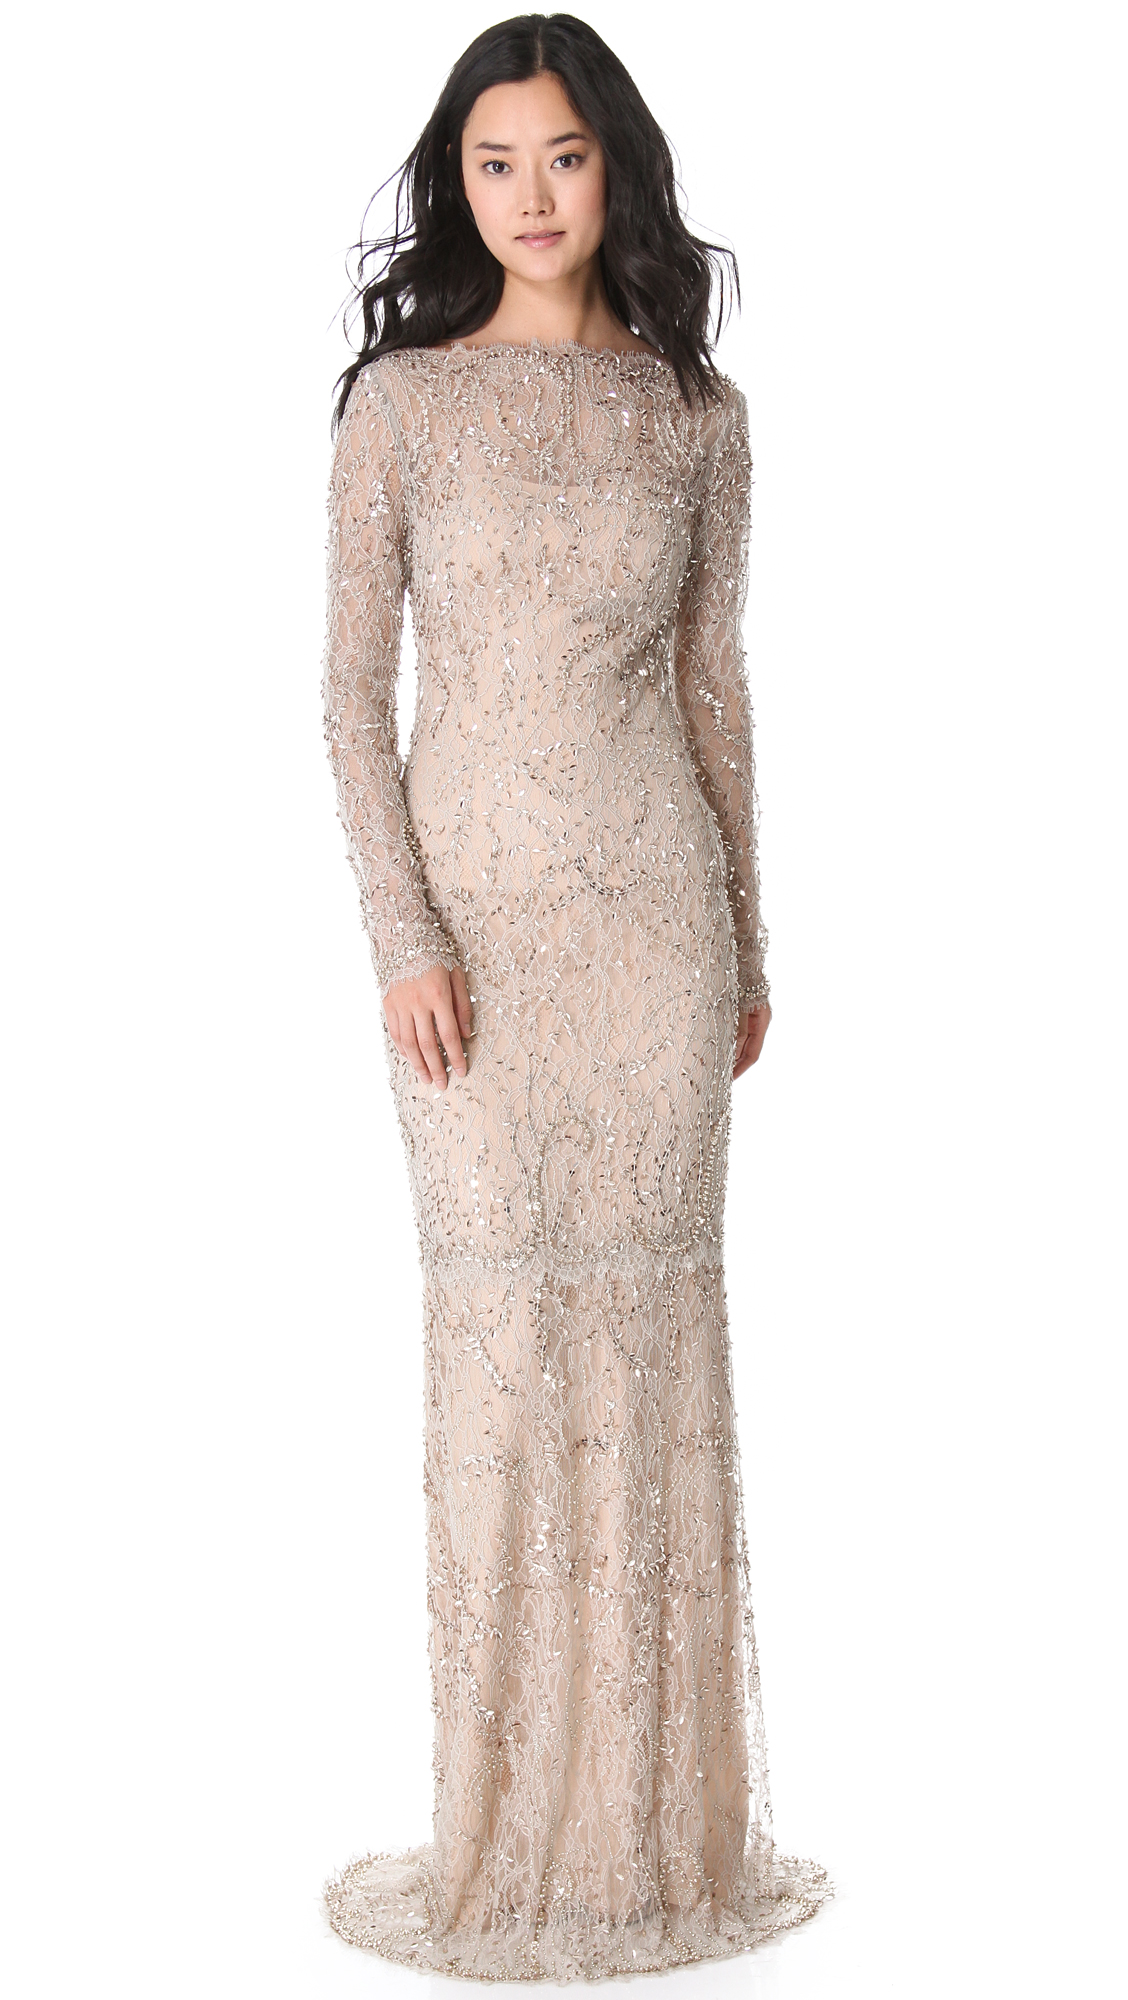 Lyst - Marchesa Beaded Lace Gown in Natural